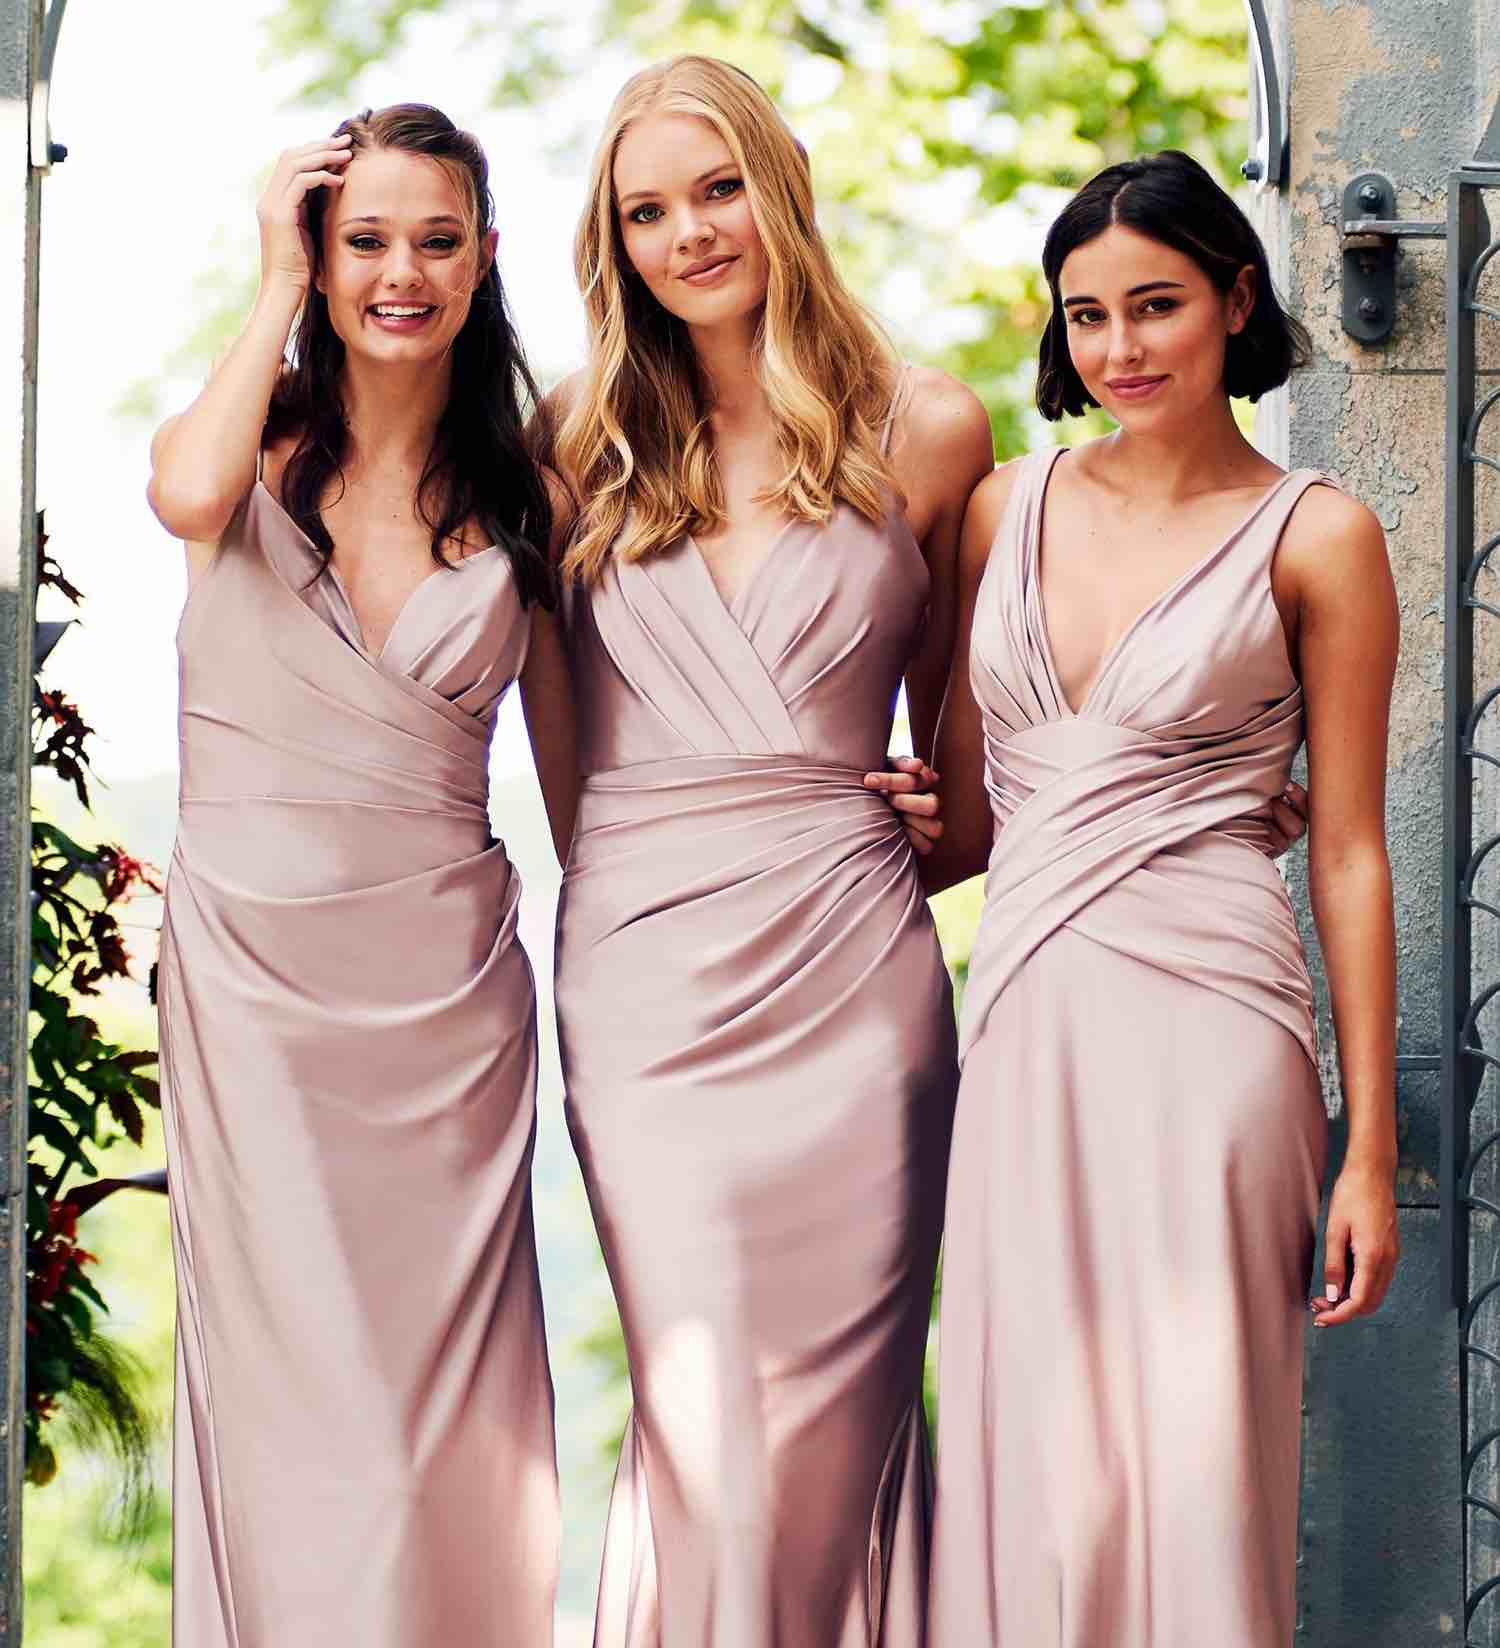 Bridesmaids wearing pastel pink dresses